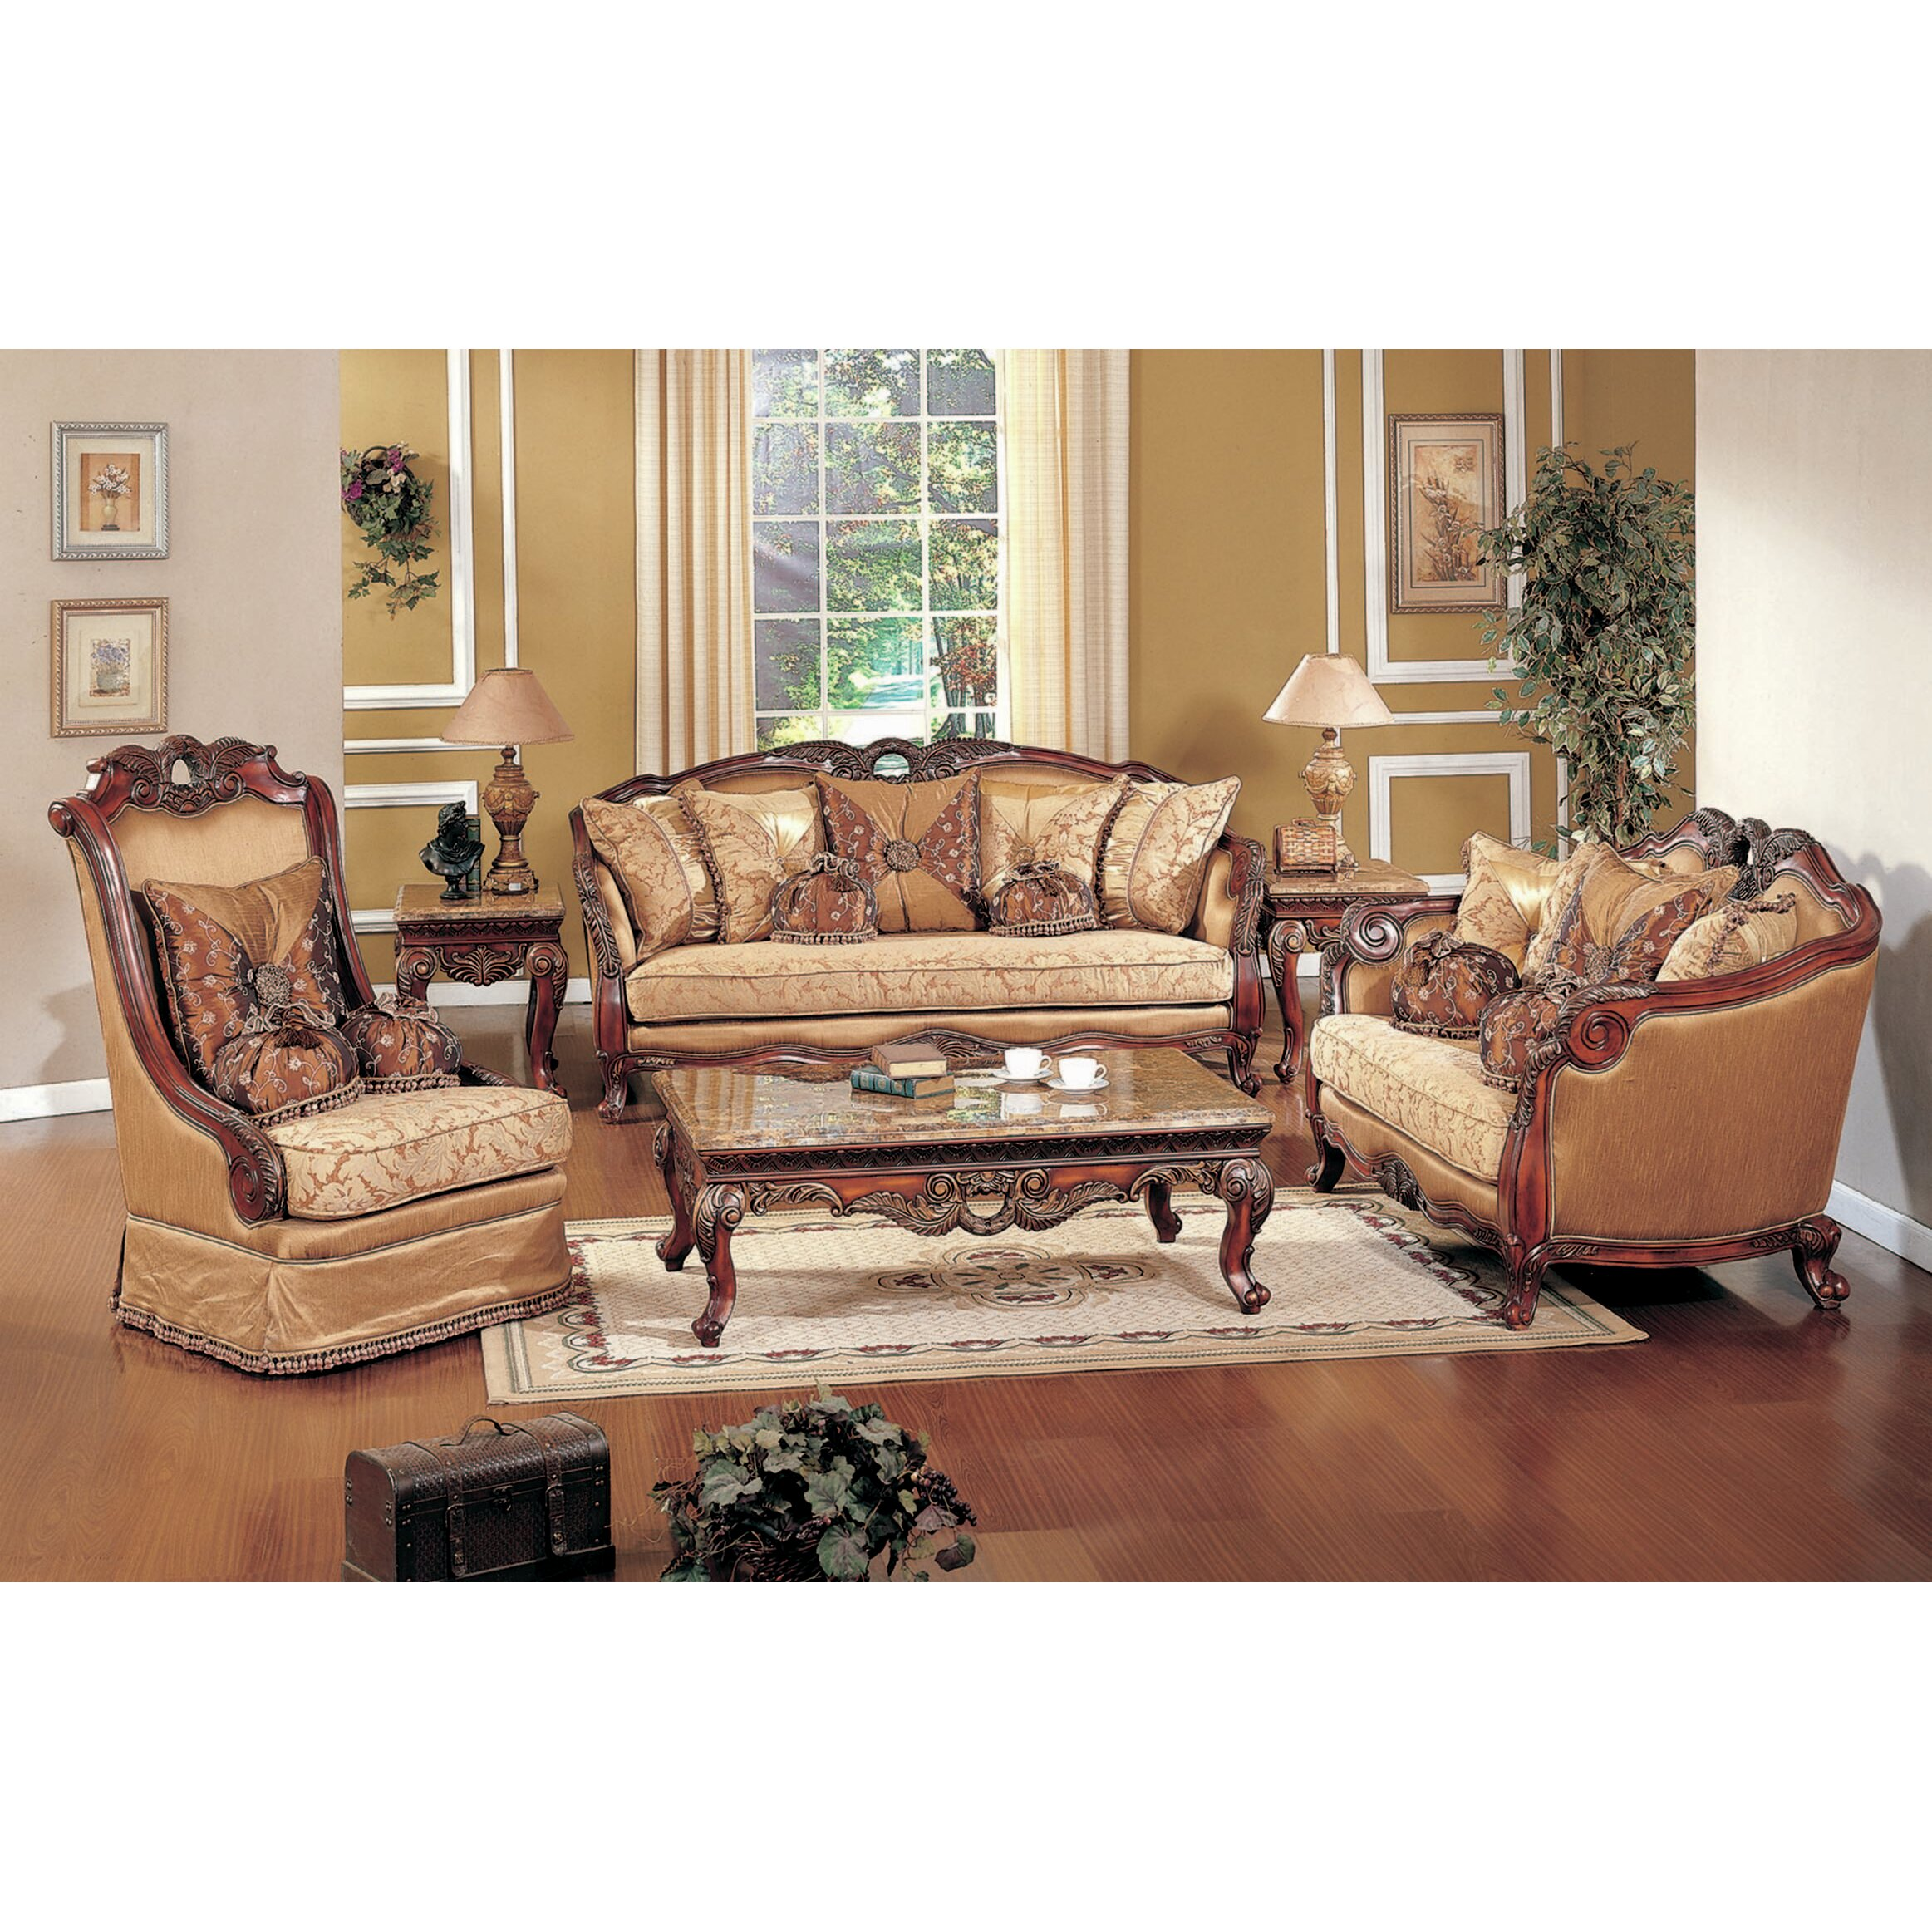 Bestmasterfurniture denmark 3 piece living room set for Living room 3 piece sets